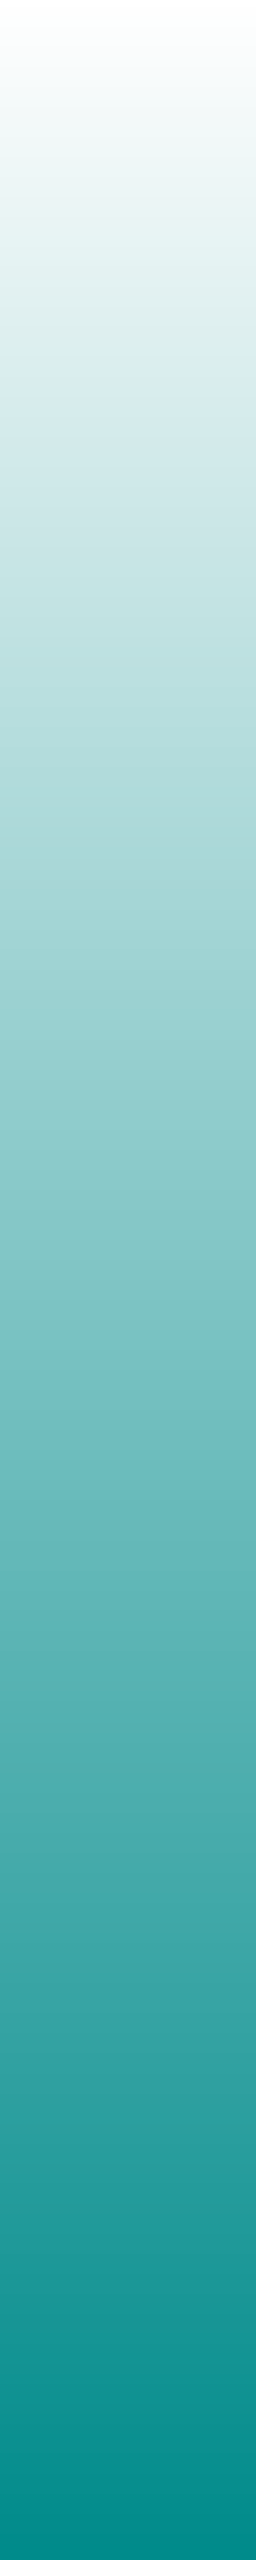 Ws Gradient Darkcyan